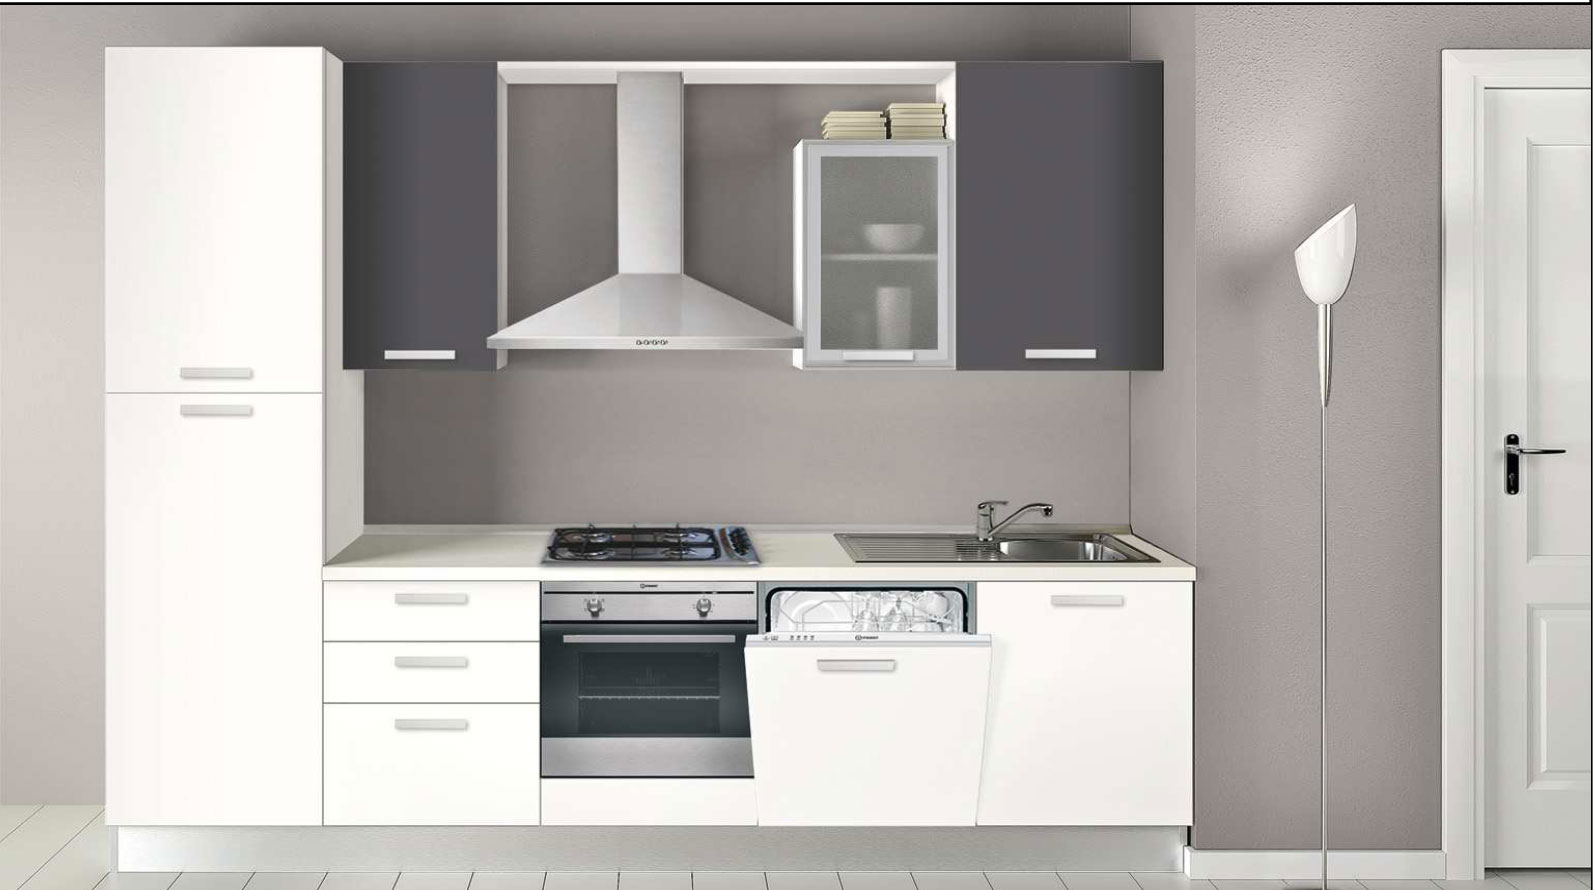 Emejing cucina 3 metri contemporary home interior ideas for Cucine 3 metri prezzi